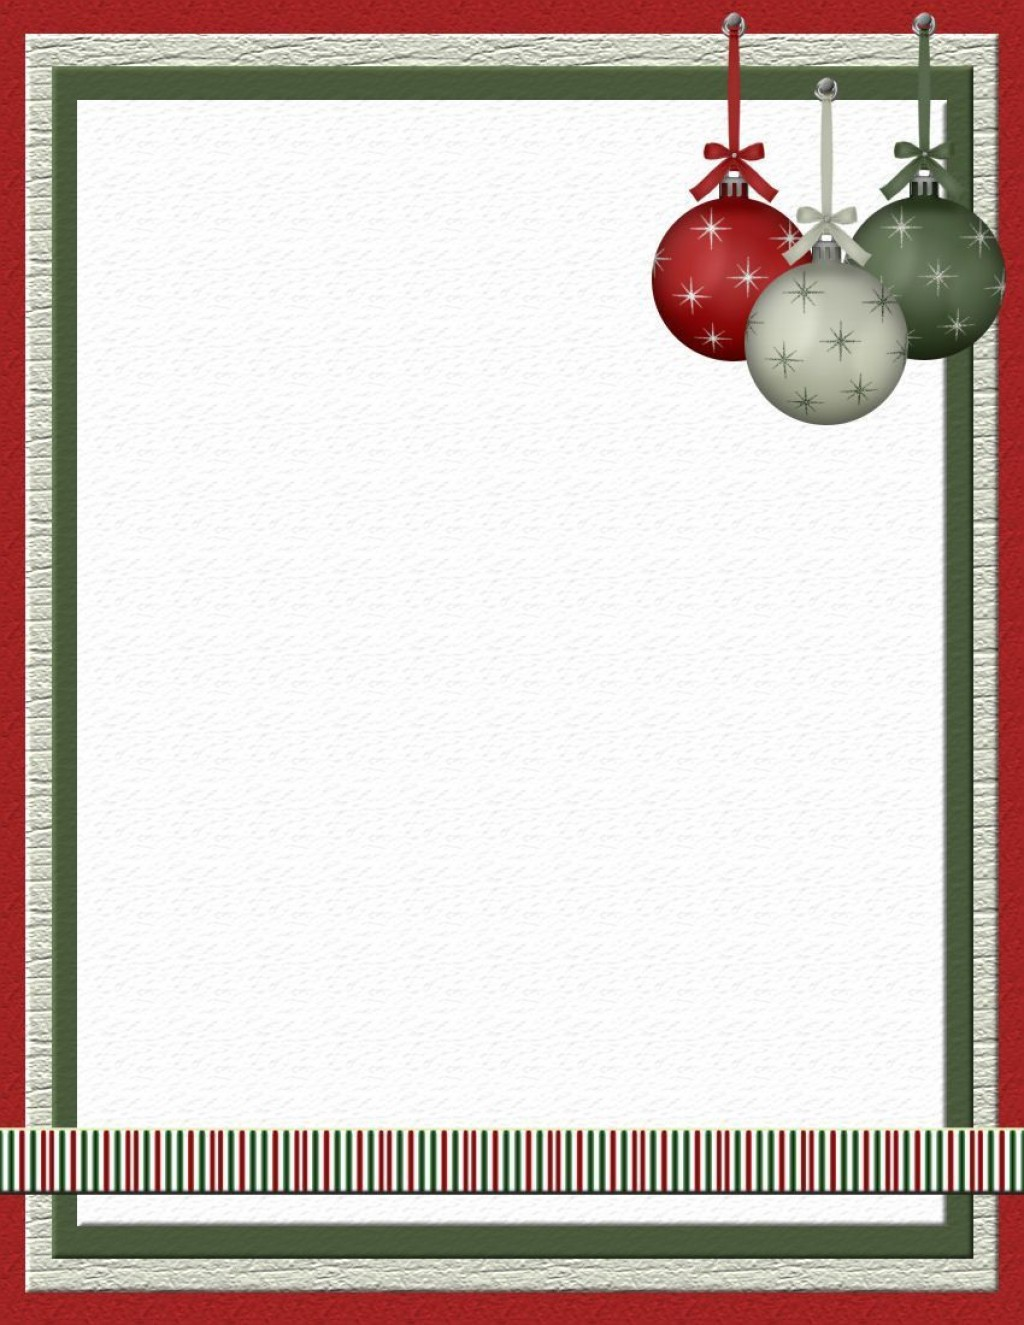 003 Amazing Christma Stationery Template Word Free High Resolution  Religiou For DownloadableLarge